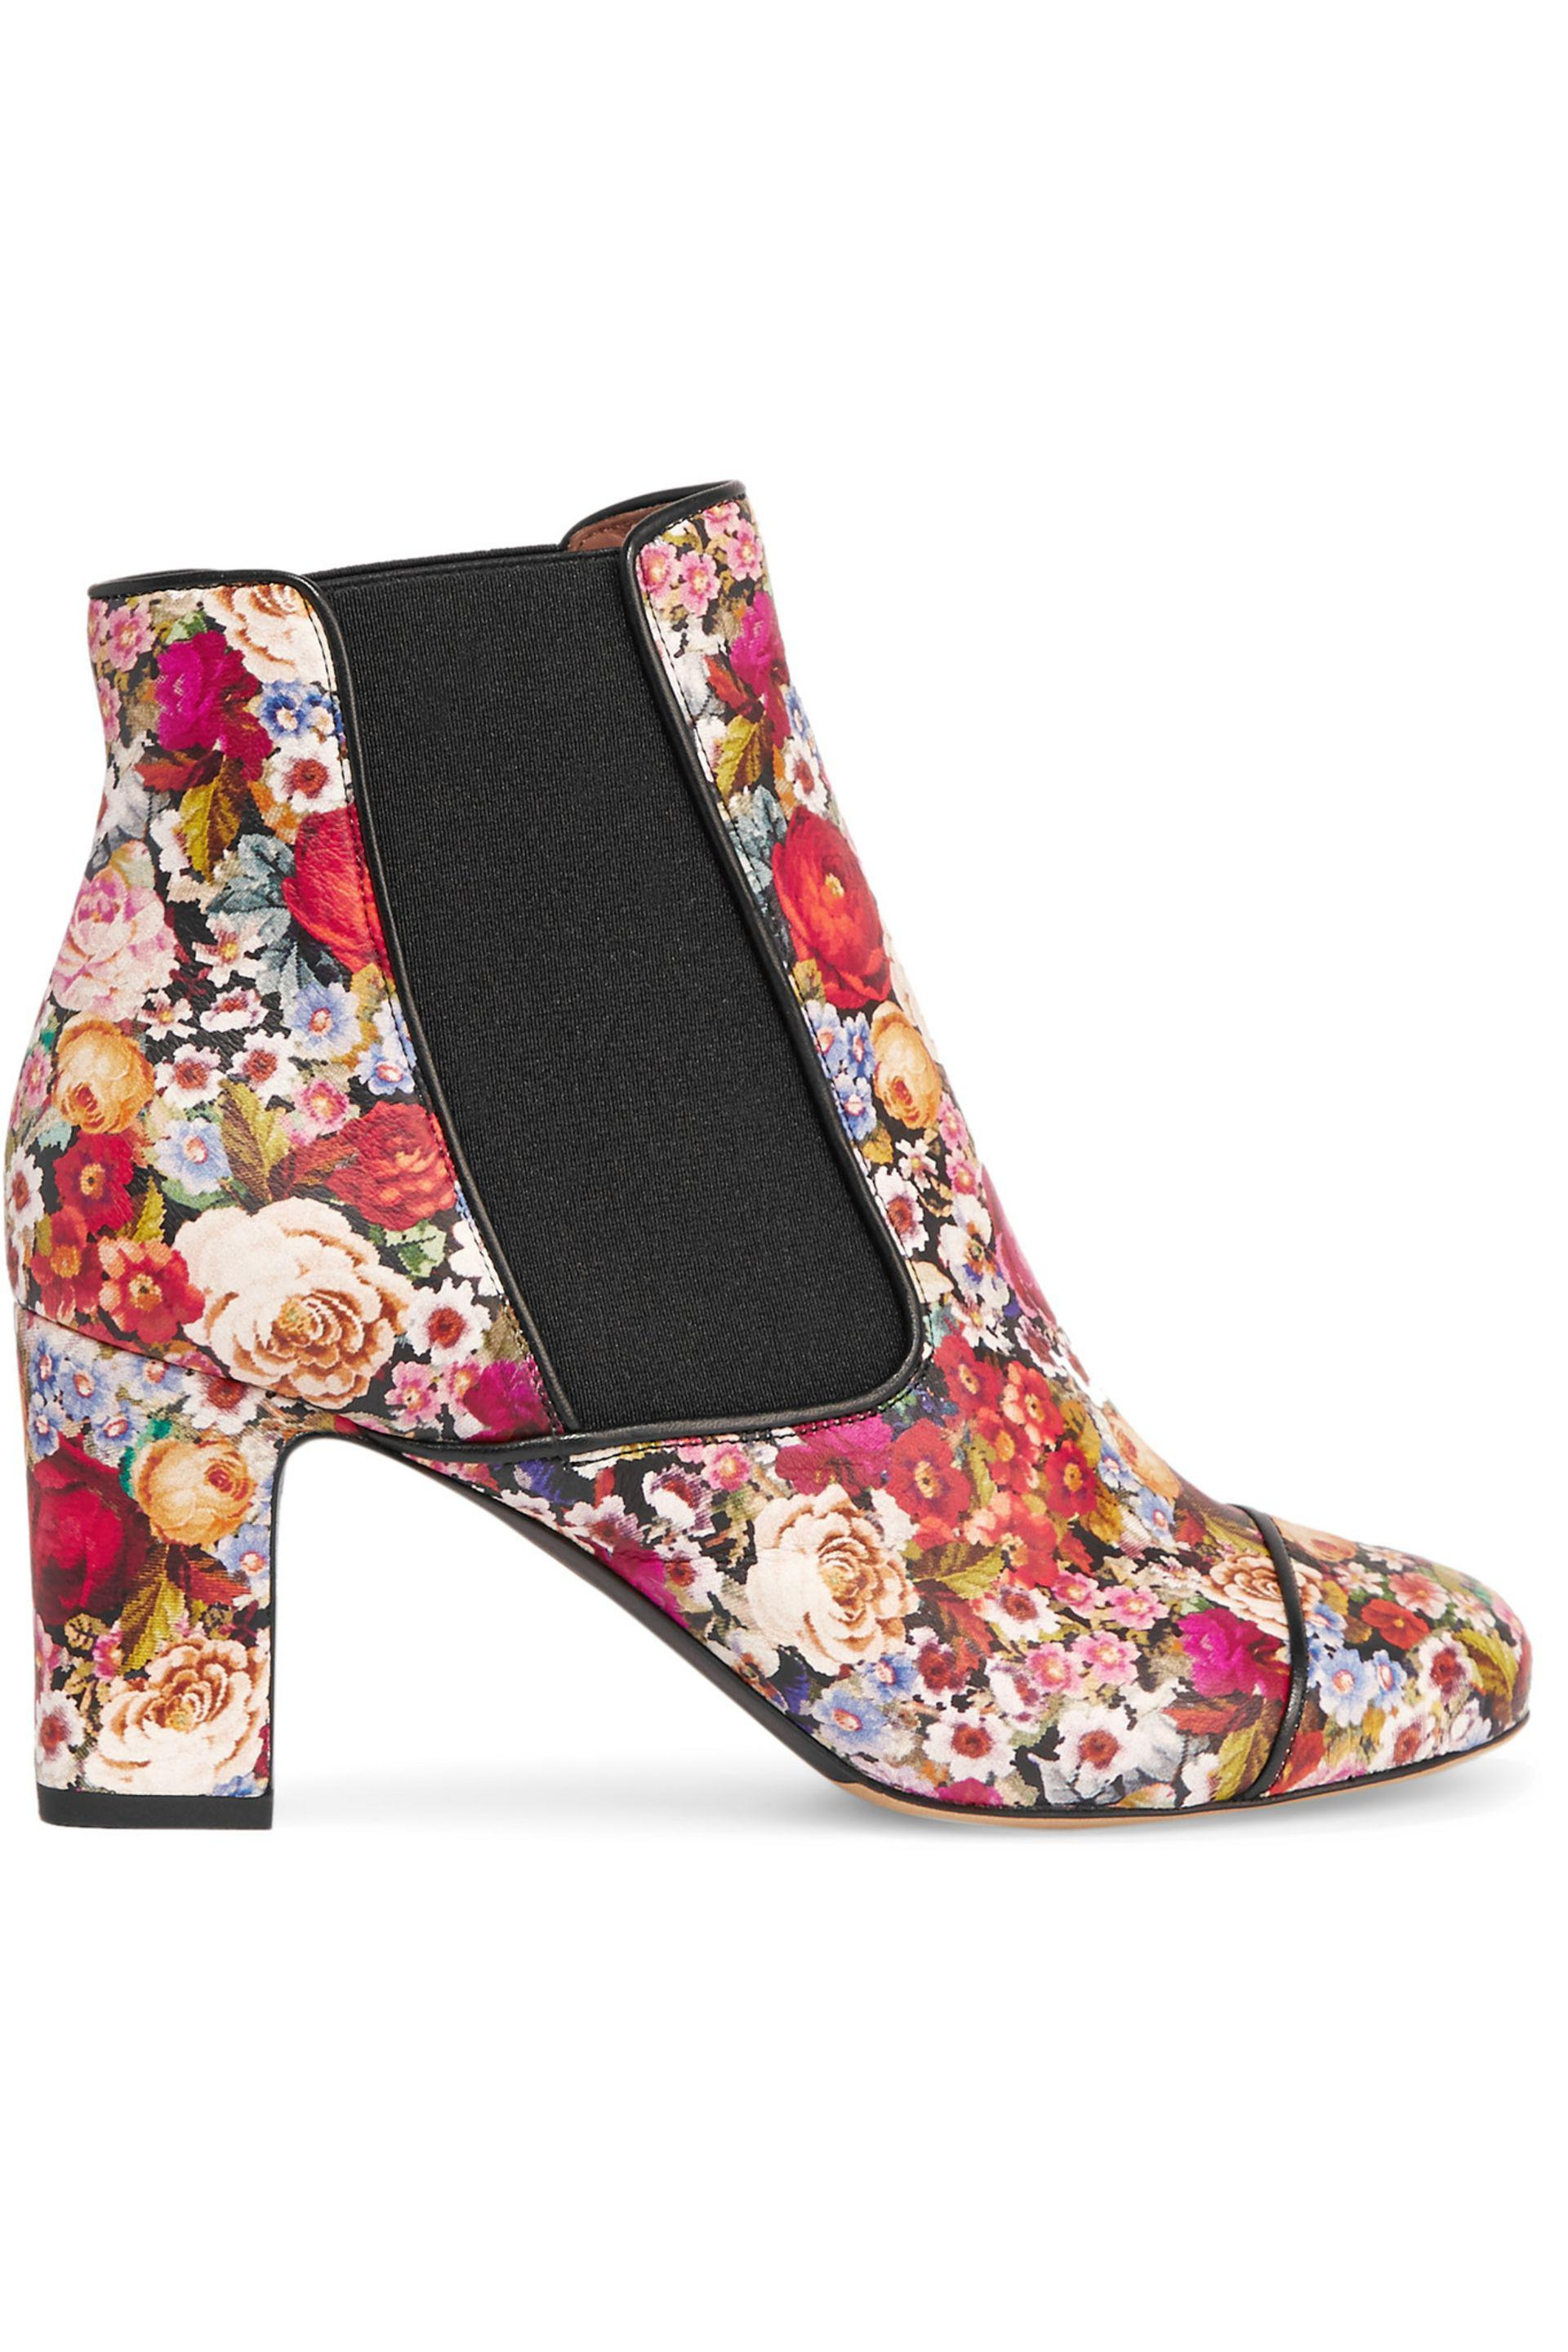 Tabitha Simmons. Women's Red Micki Floral-print Leather Ankle Boots